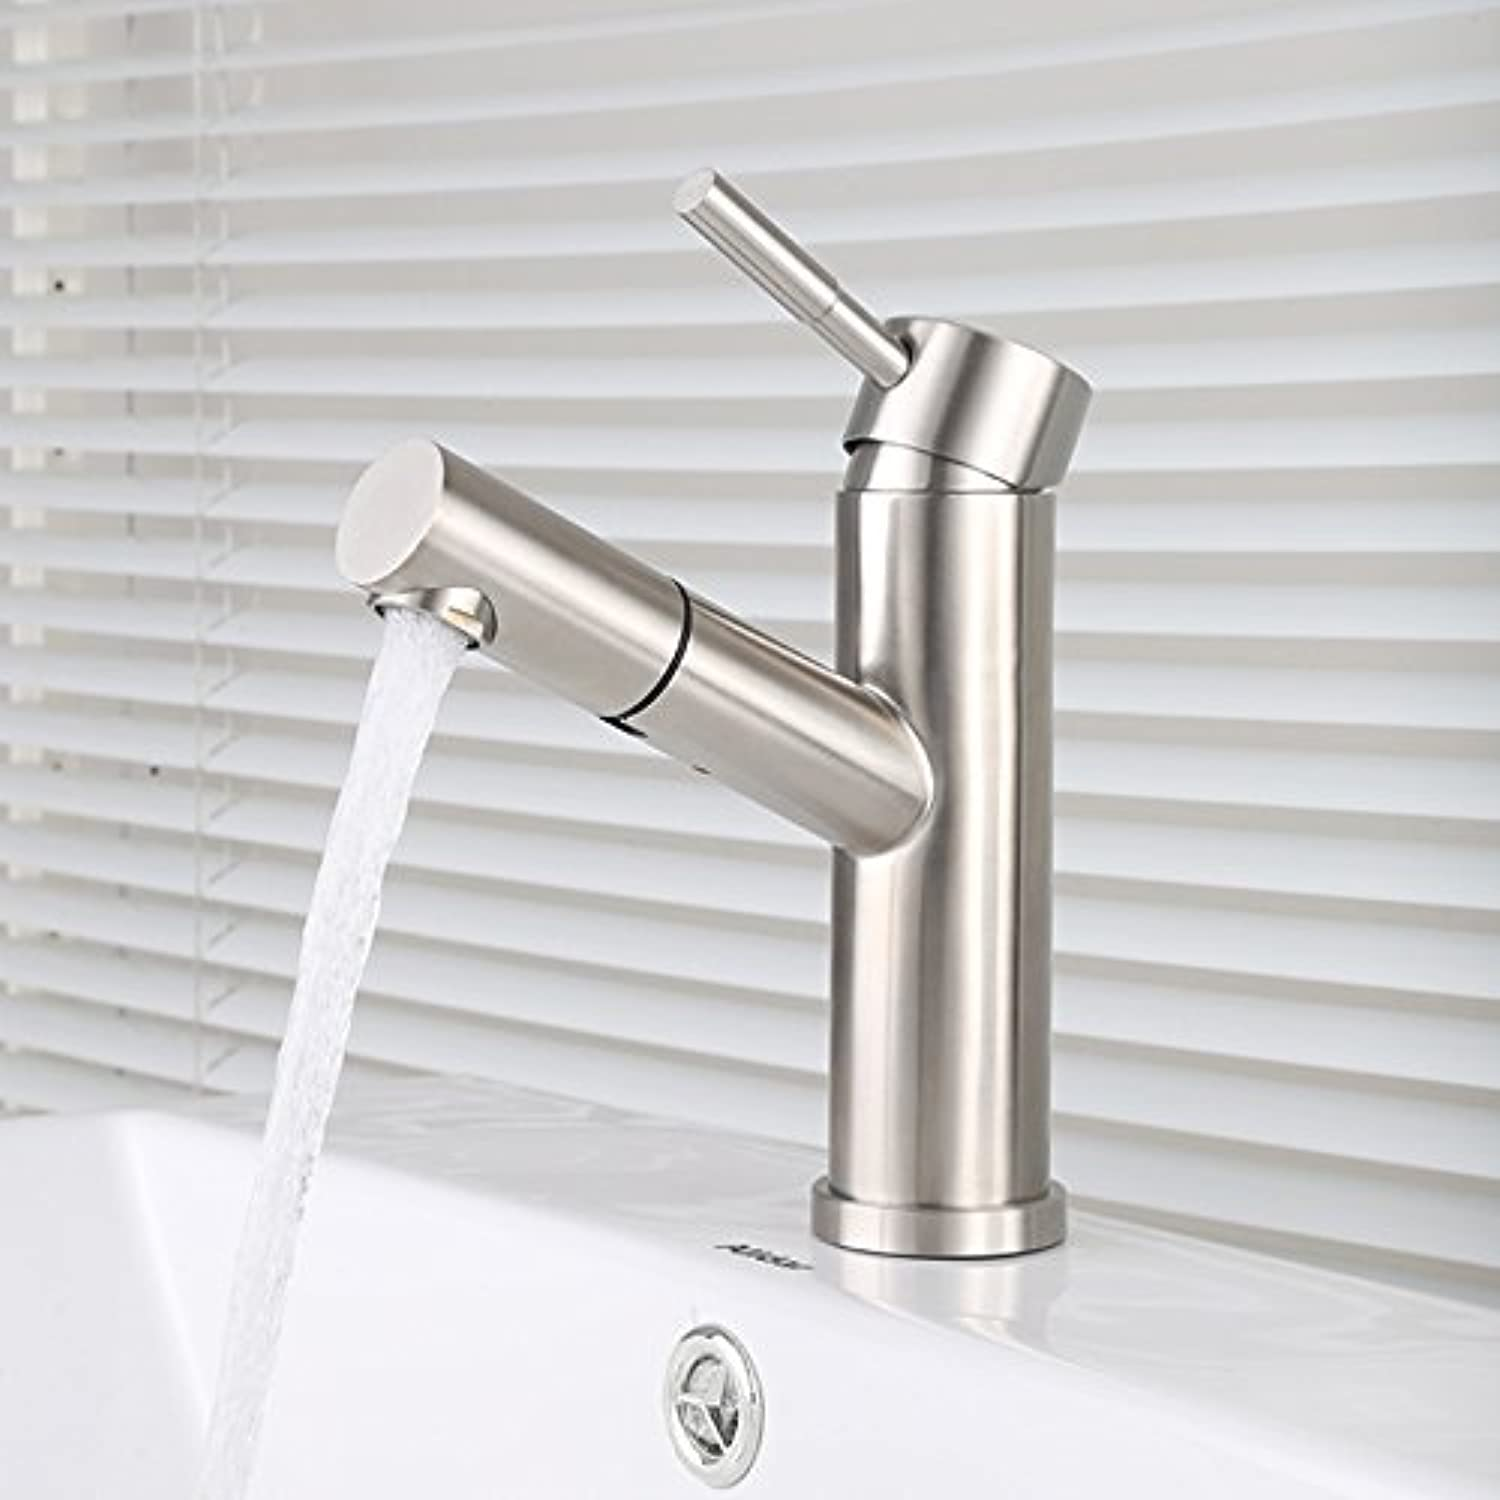 FREST Stainless steel faucet washbasin hot and cold pull faucet, A